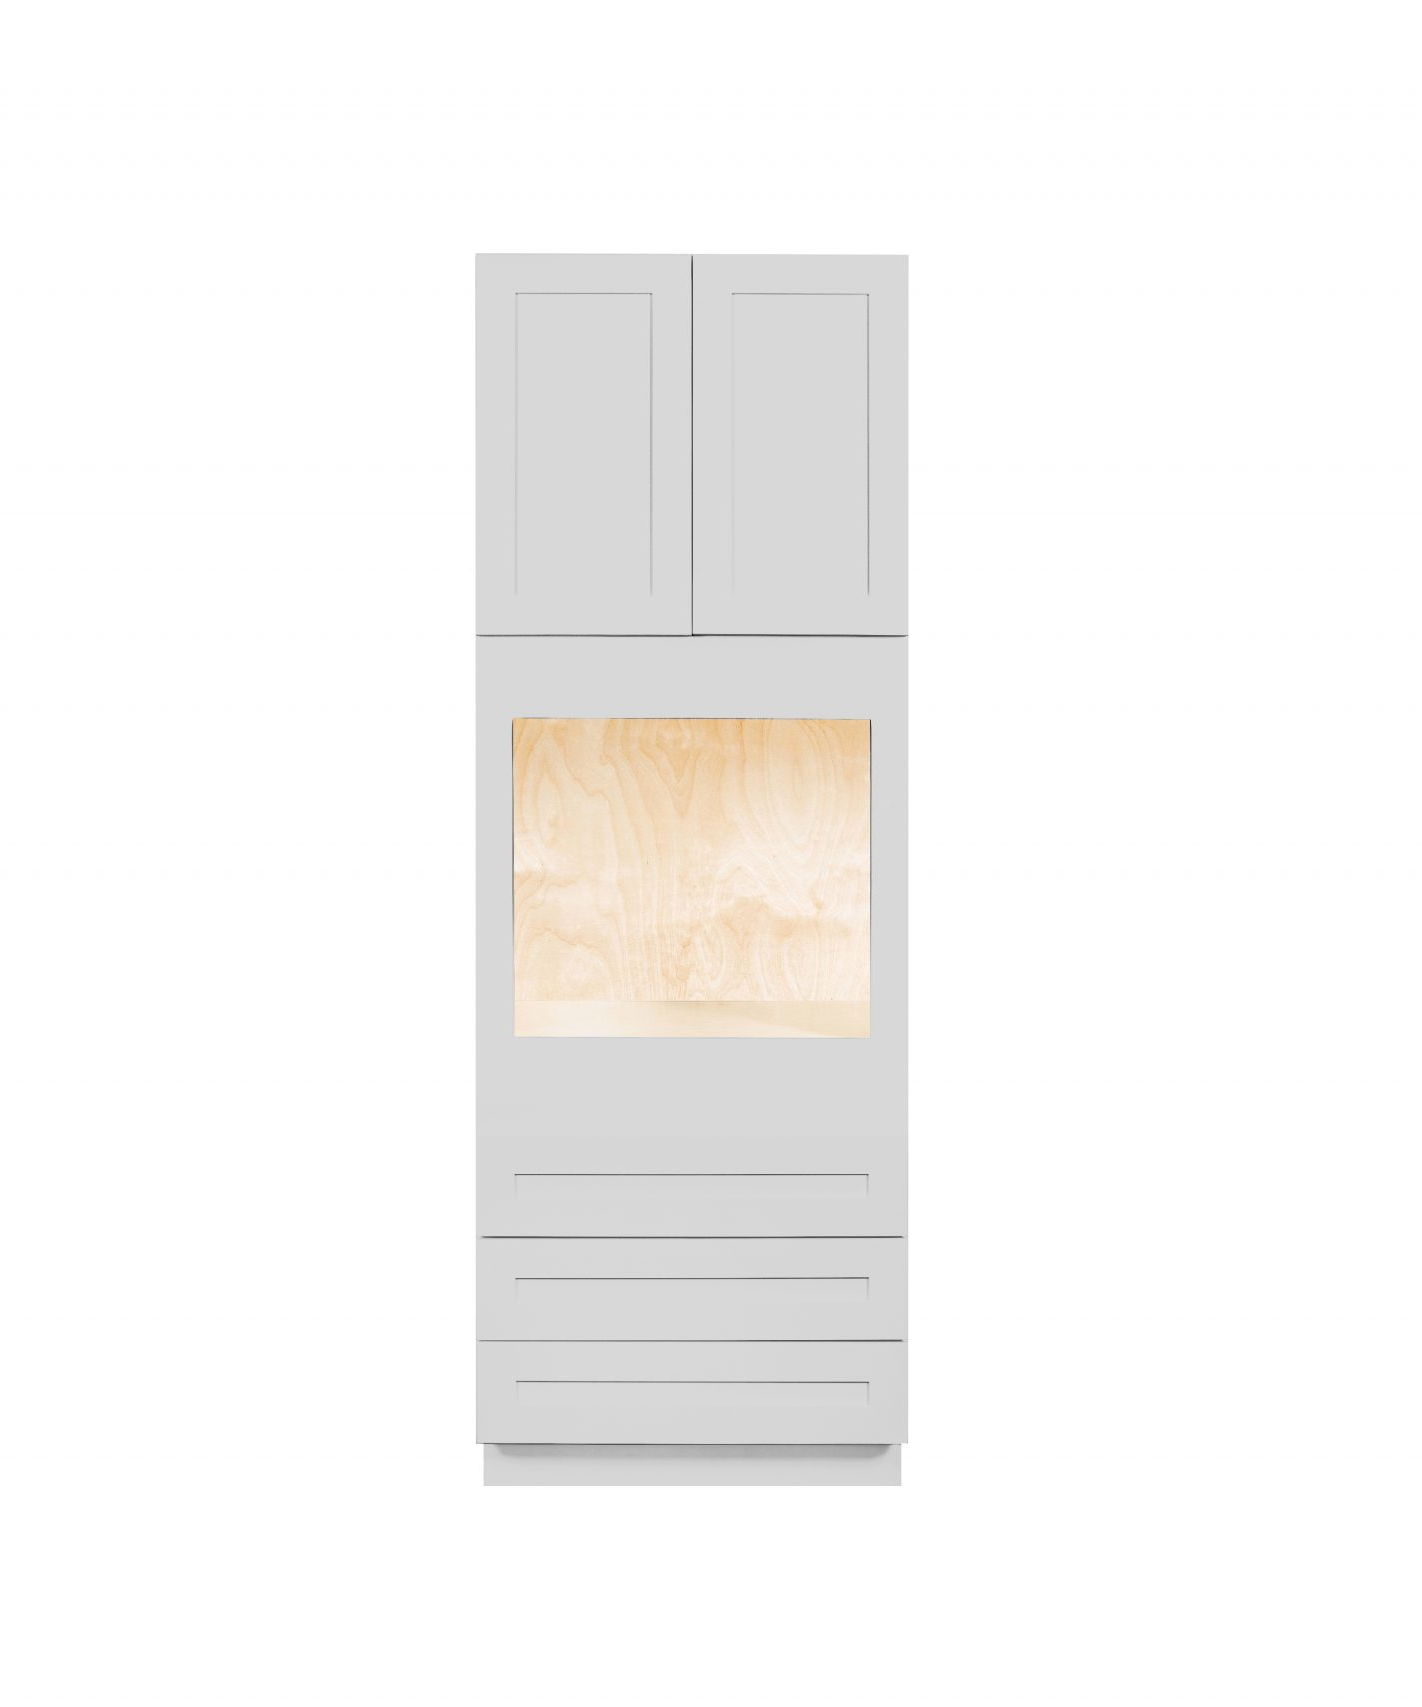 Nelson Cabinetry Gray Shaker Kitchen Oven Cabinet